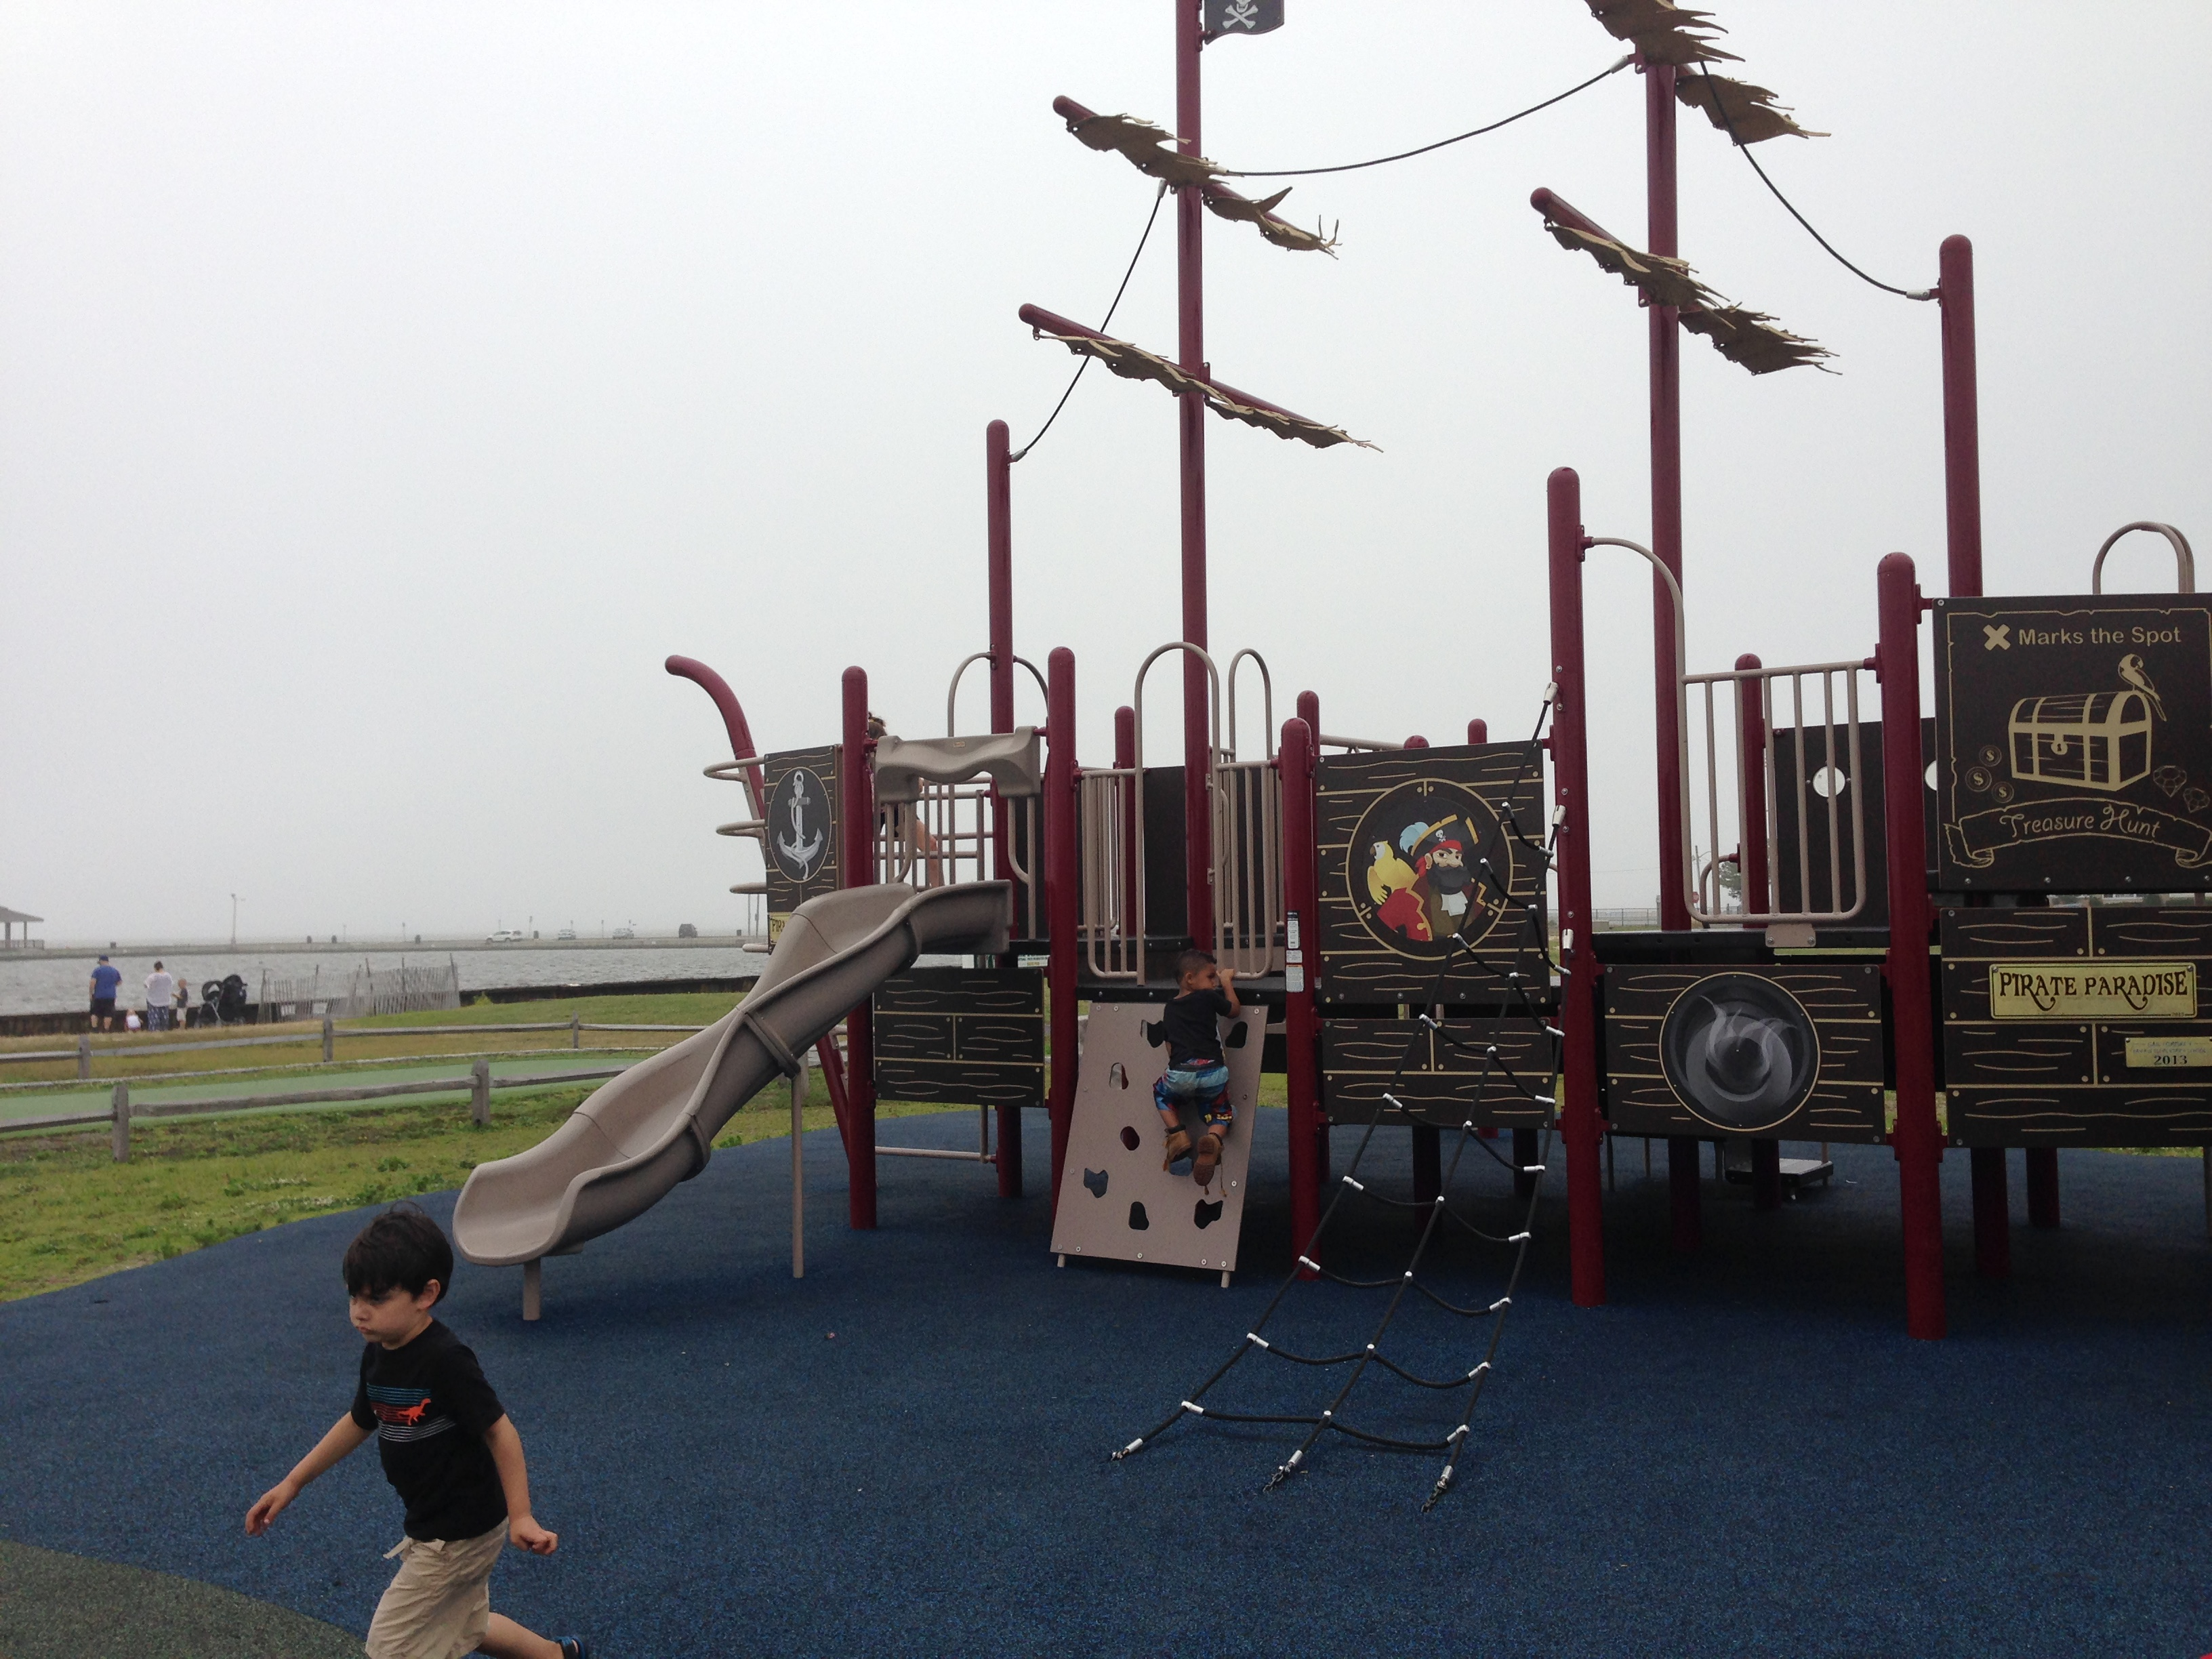 Shorefront Park Patchogue, NY: Top Tips Before You